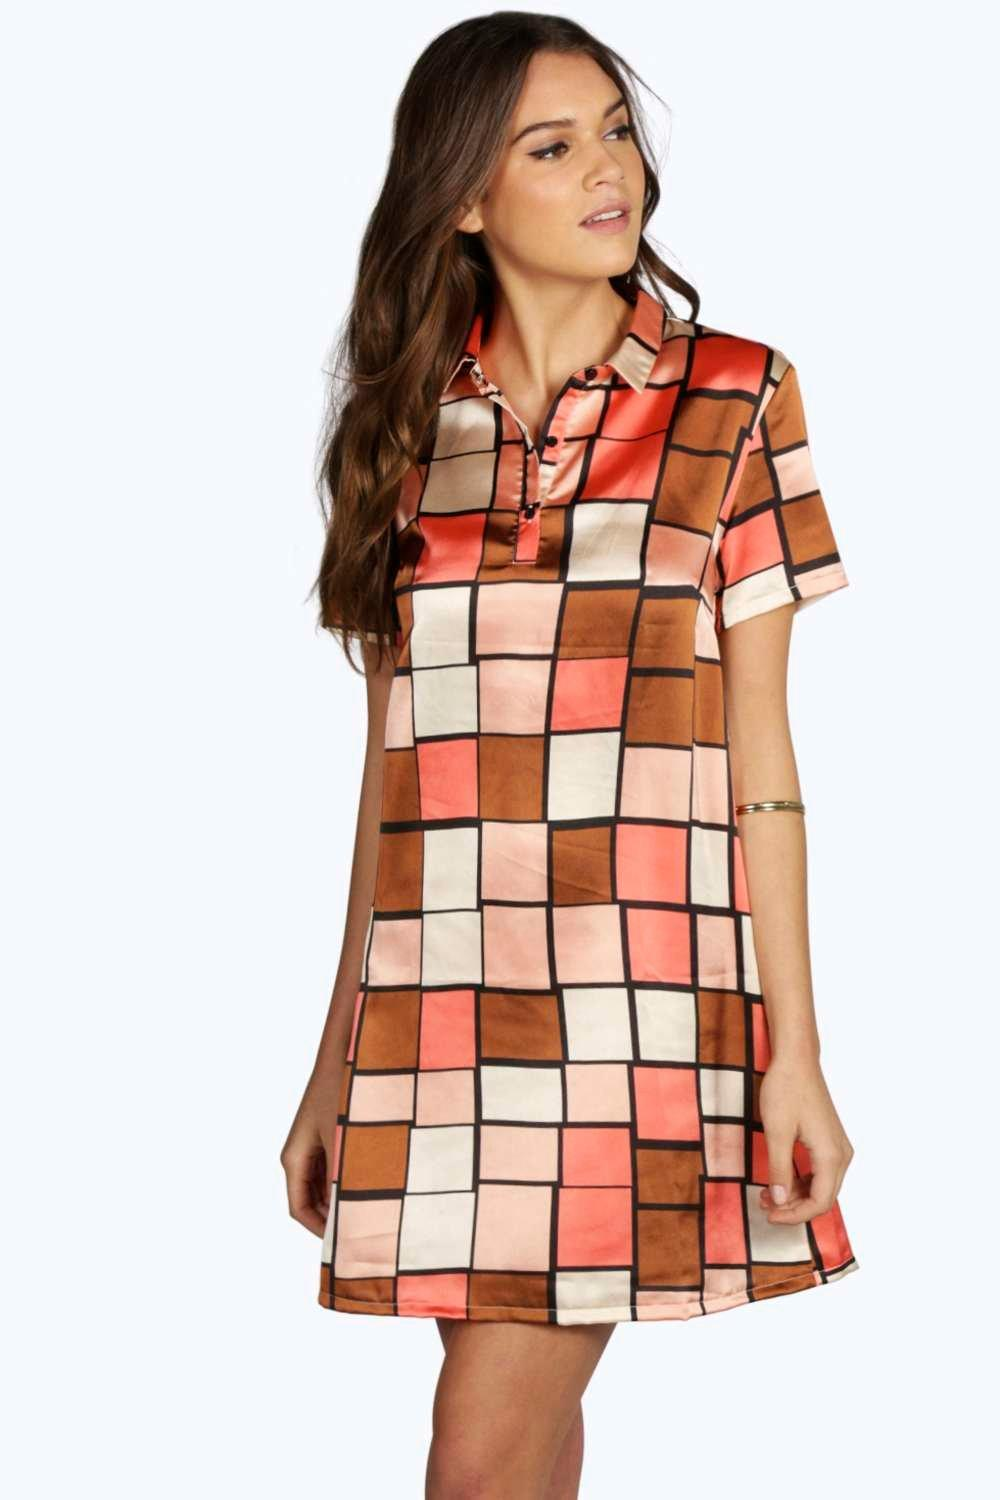 Loulou Geo Short Sleeve Shirt Dress